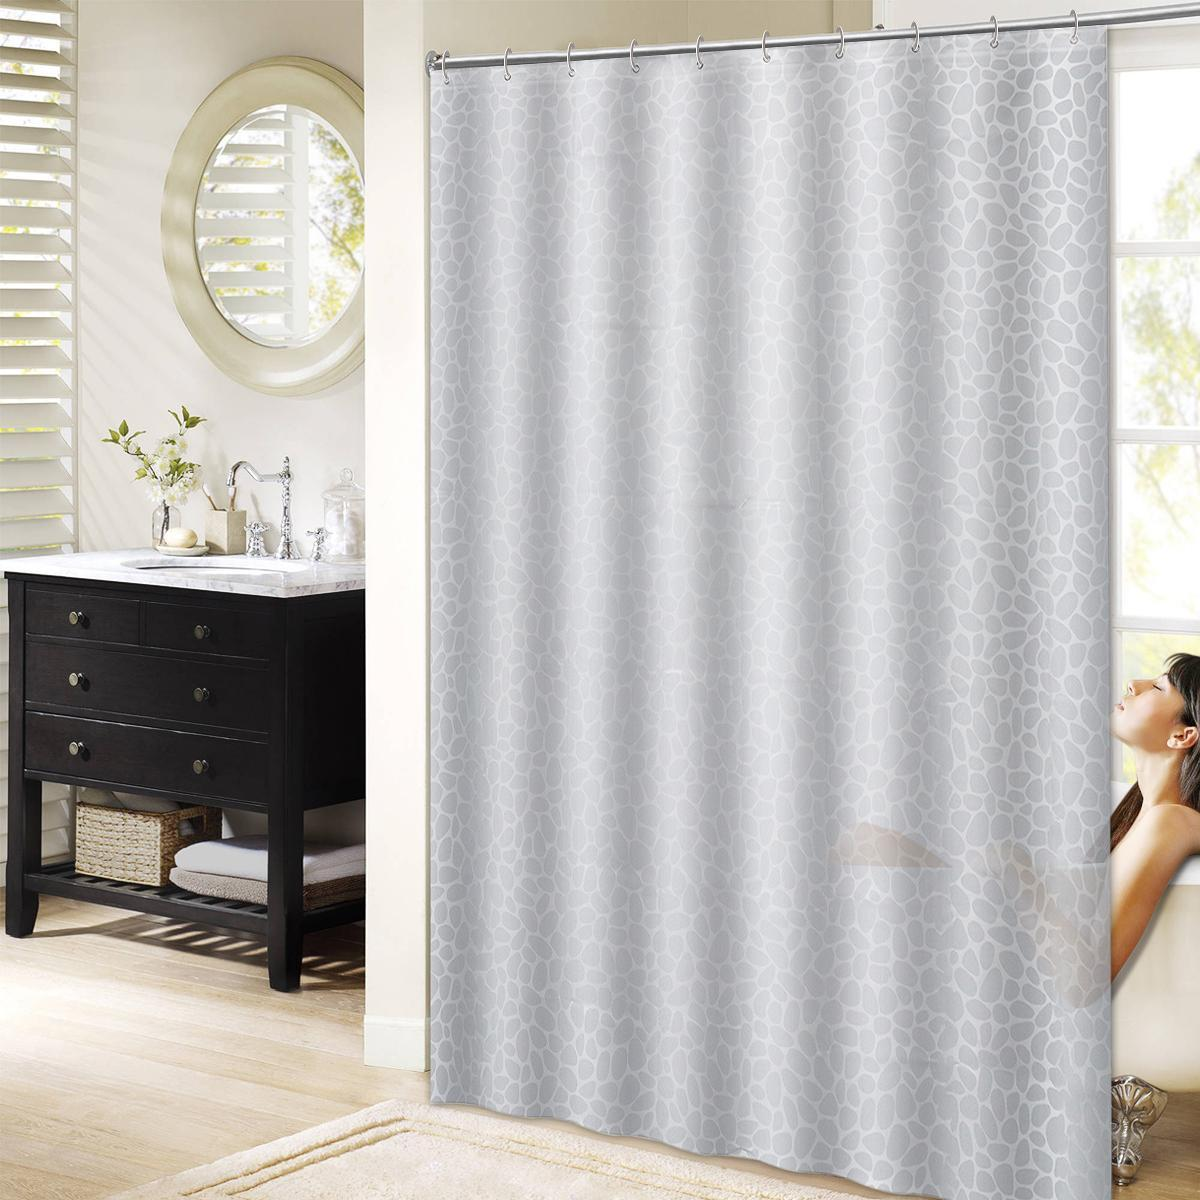 Shower Curtains At Best Prices In Sri Lanka